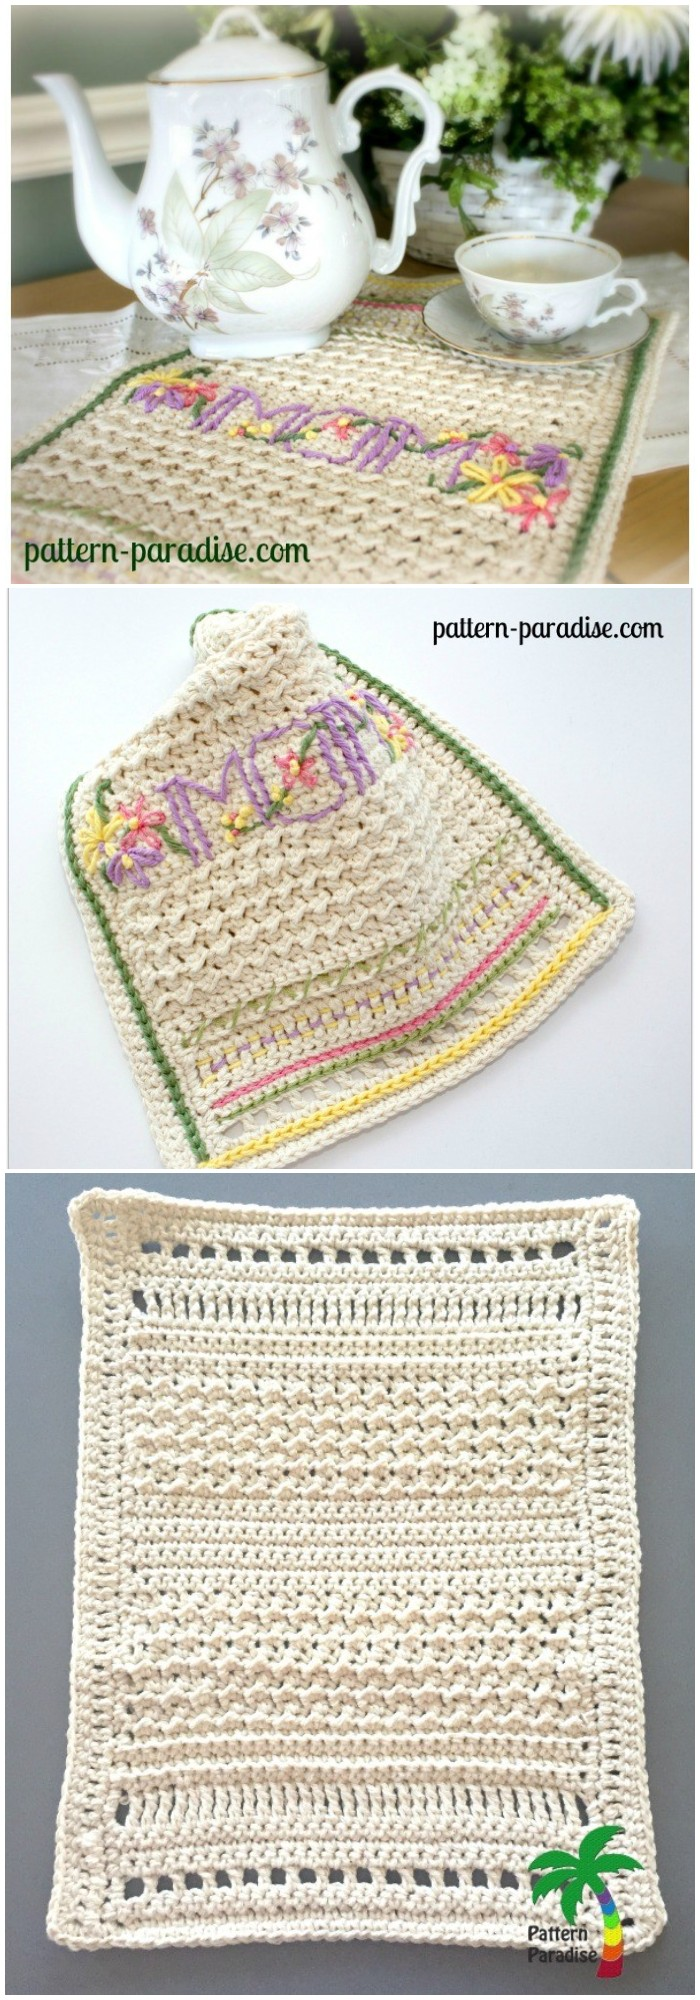 FREE CROCHET PATTERN  A NEW DISHTOWEL & EMBELLISHMENT